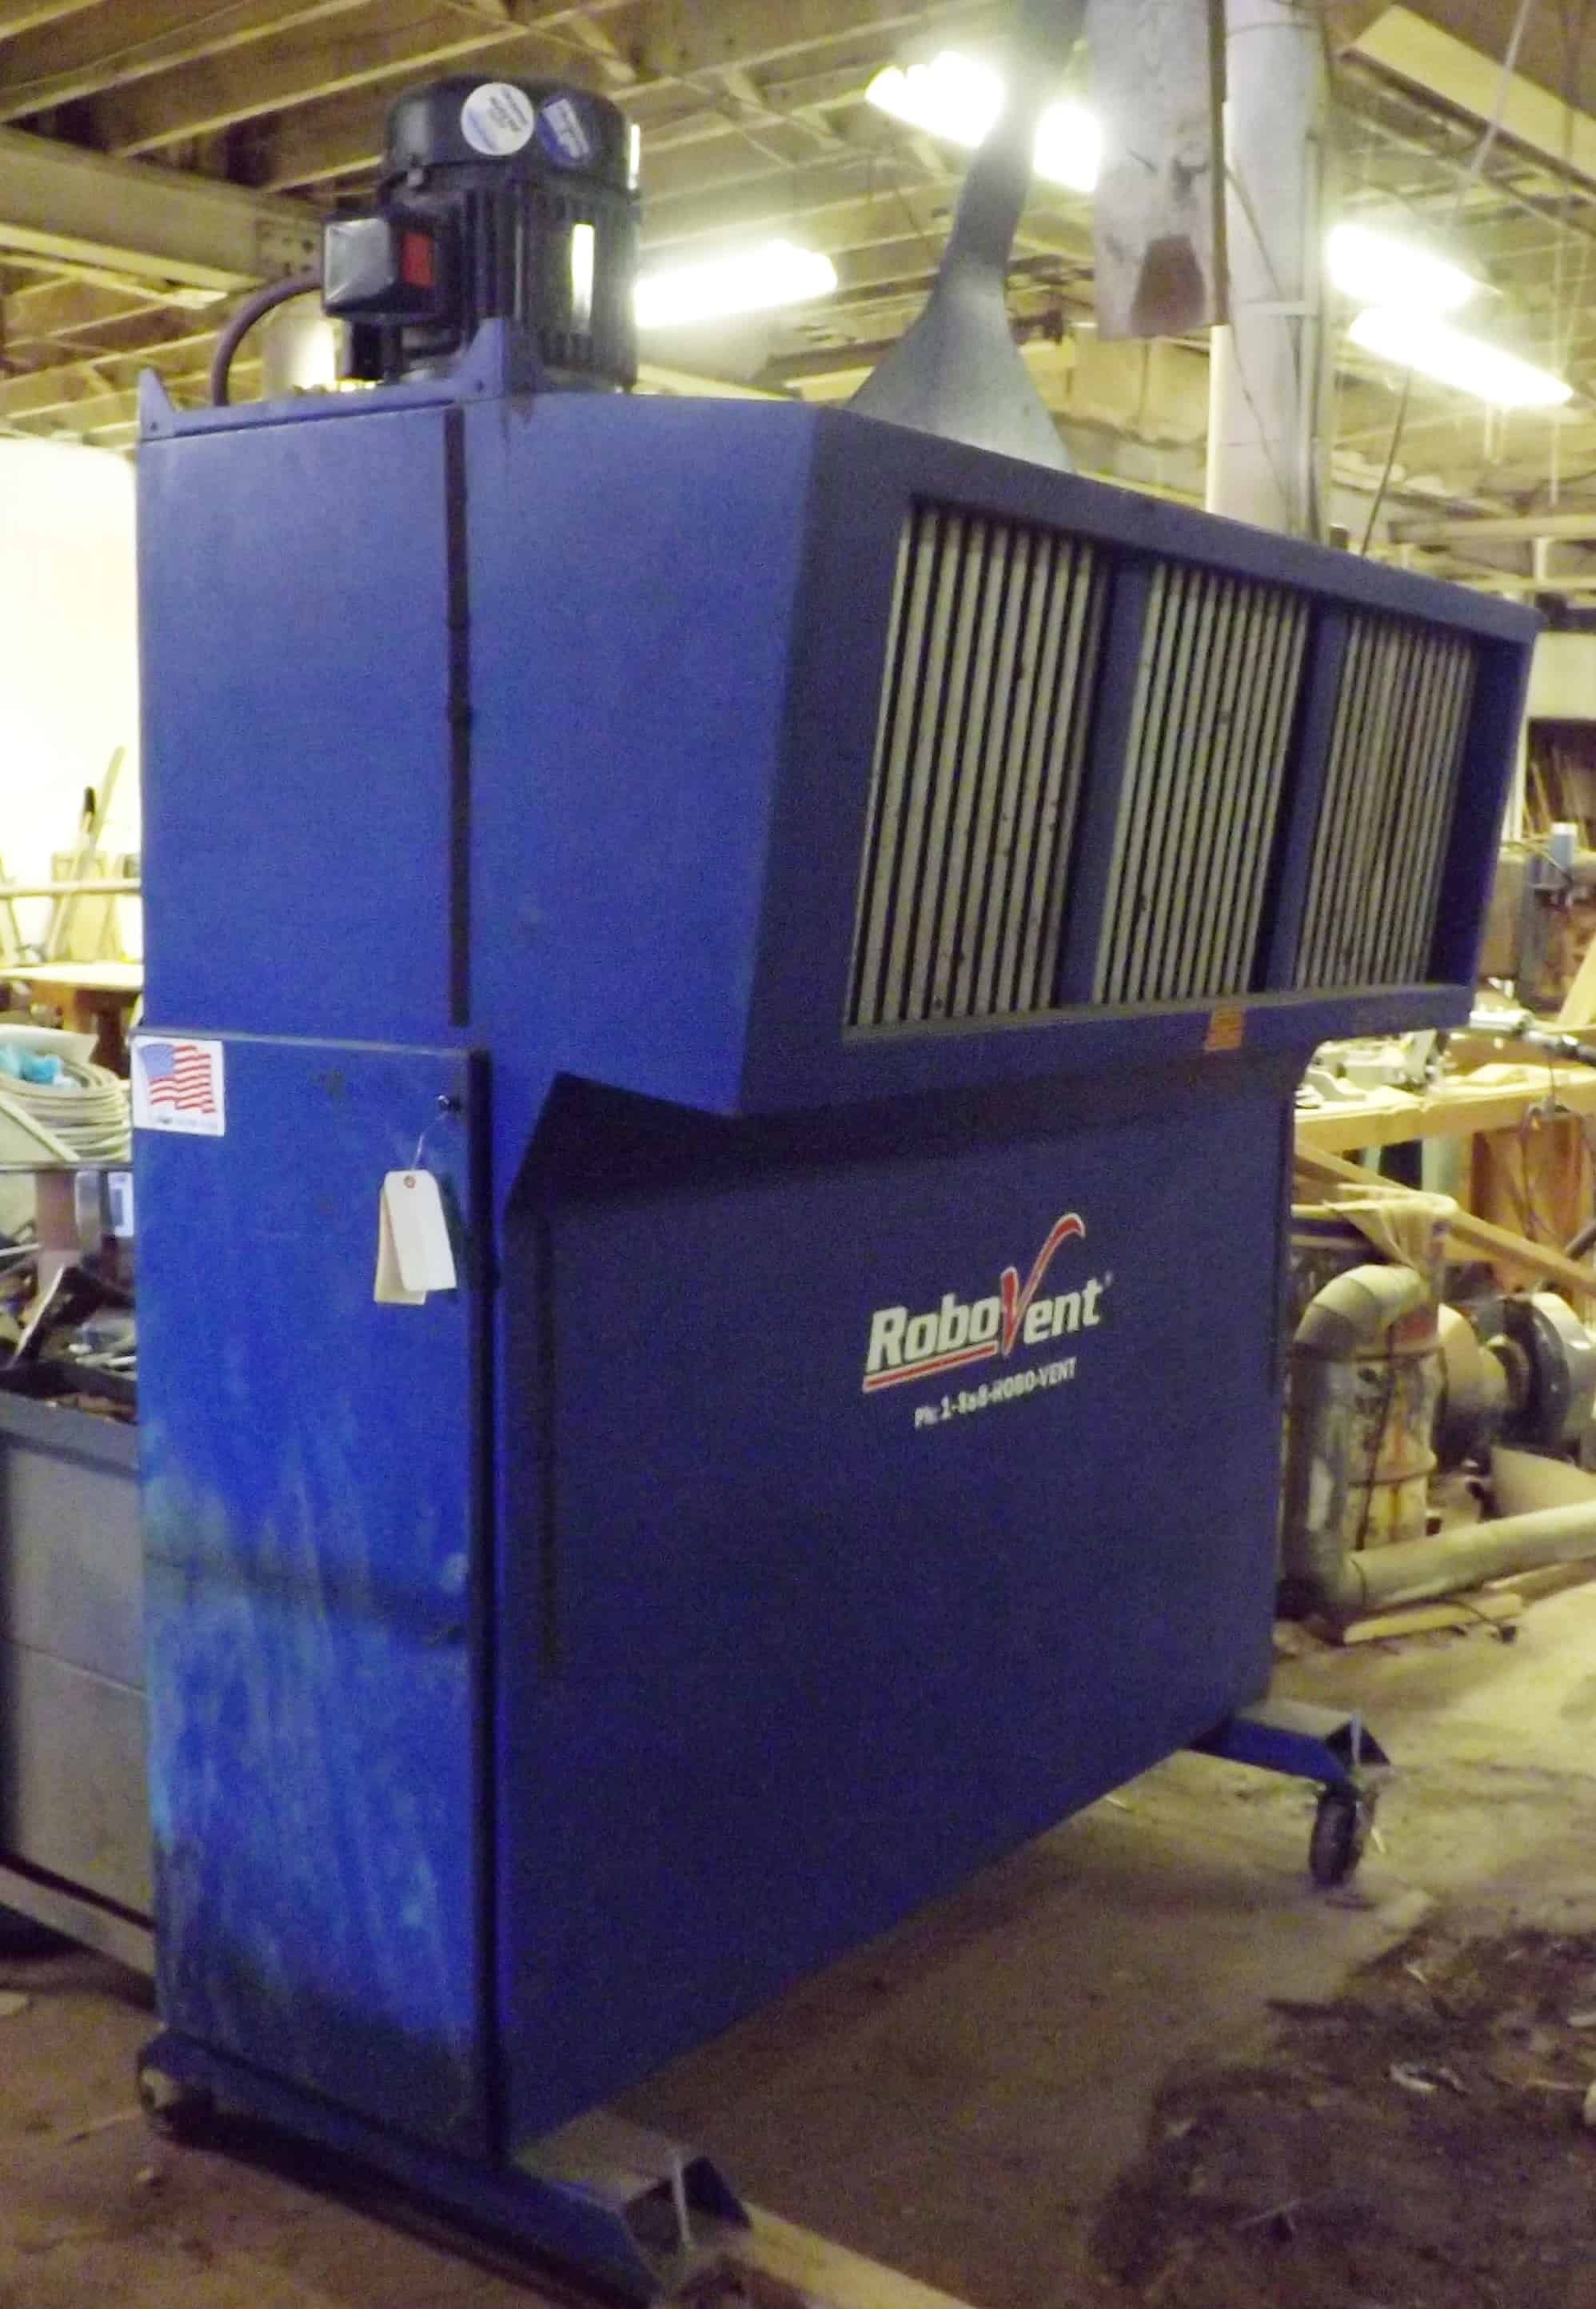 RoboVent Air Filter / Dust Collector, Model DWS-4000-4, S/N 20622, 7-1/2 HP, 3 Phase 460 Volt (Located in Pittsbugh, PA)***JPI****